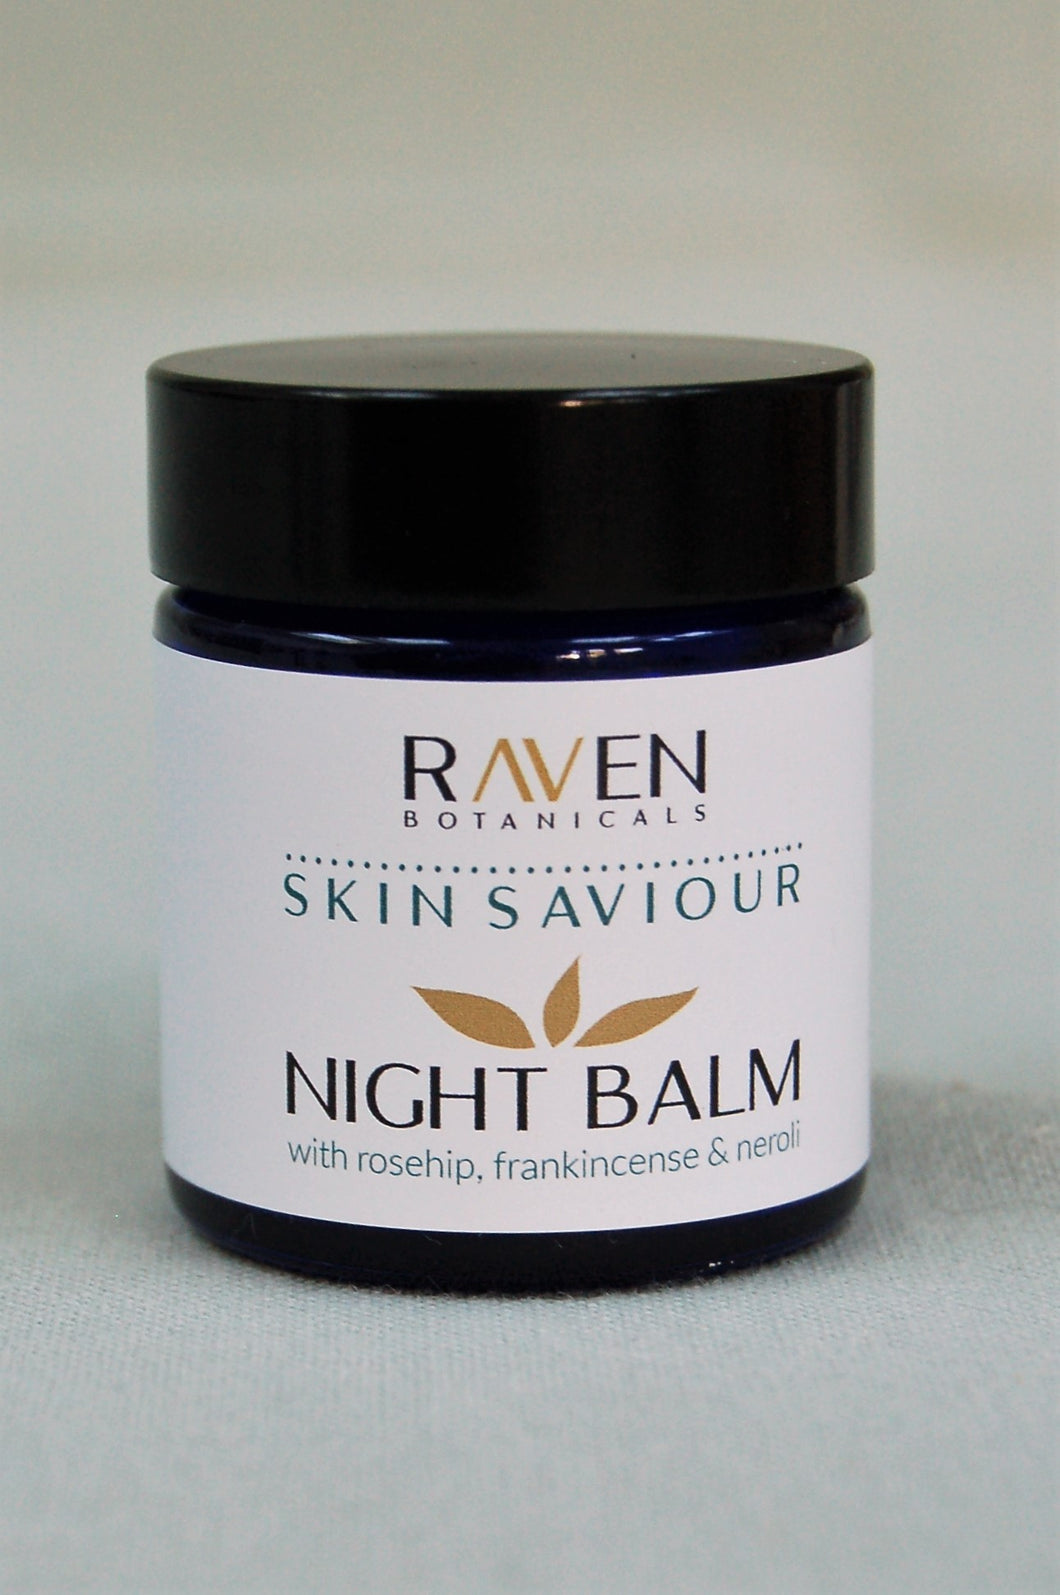 Skin Saviour Night Balm